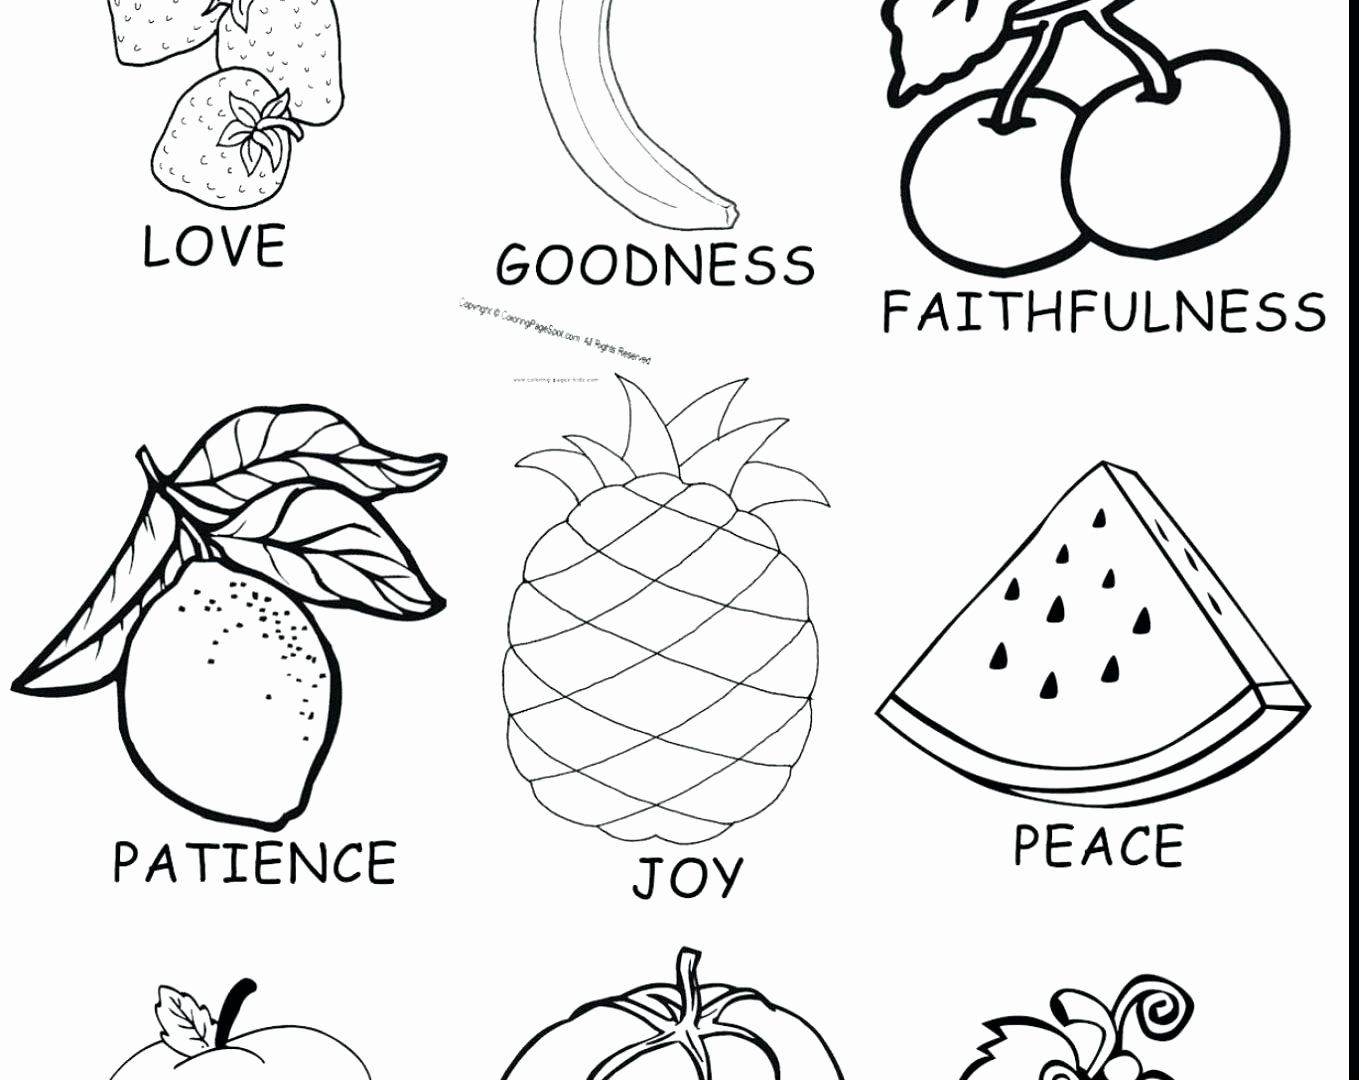 Fruits Coloring Sheets Free Printable Beautiful Collection Color By Number Fruit The Spirit Co Coloring Pages Inspirational Apple Coloring Pages Coloring Pages